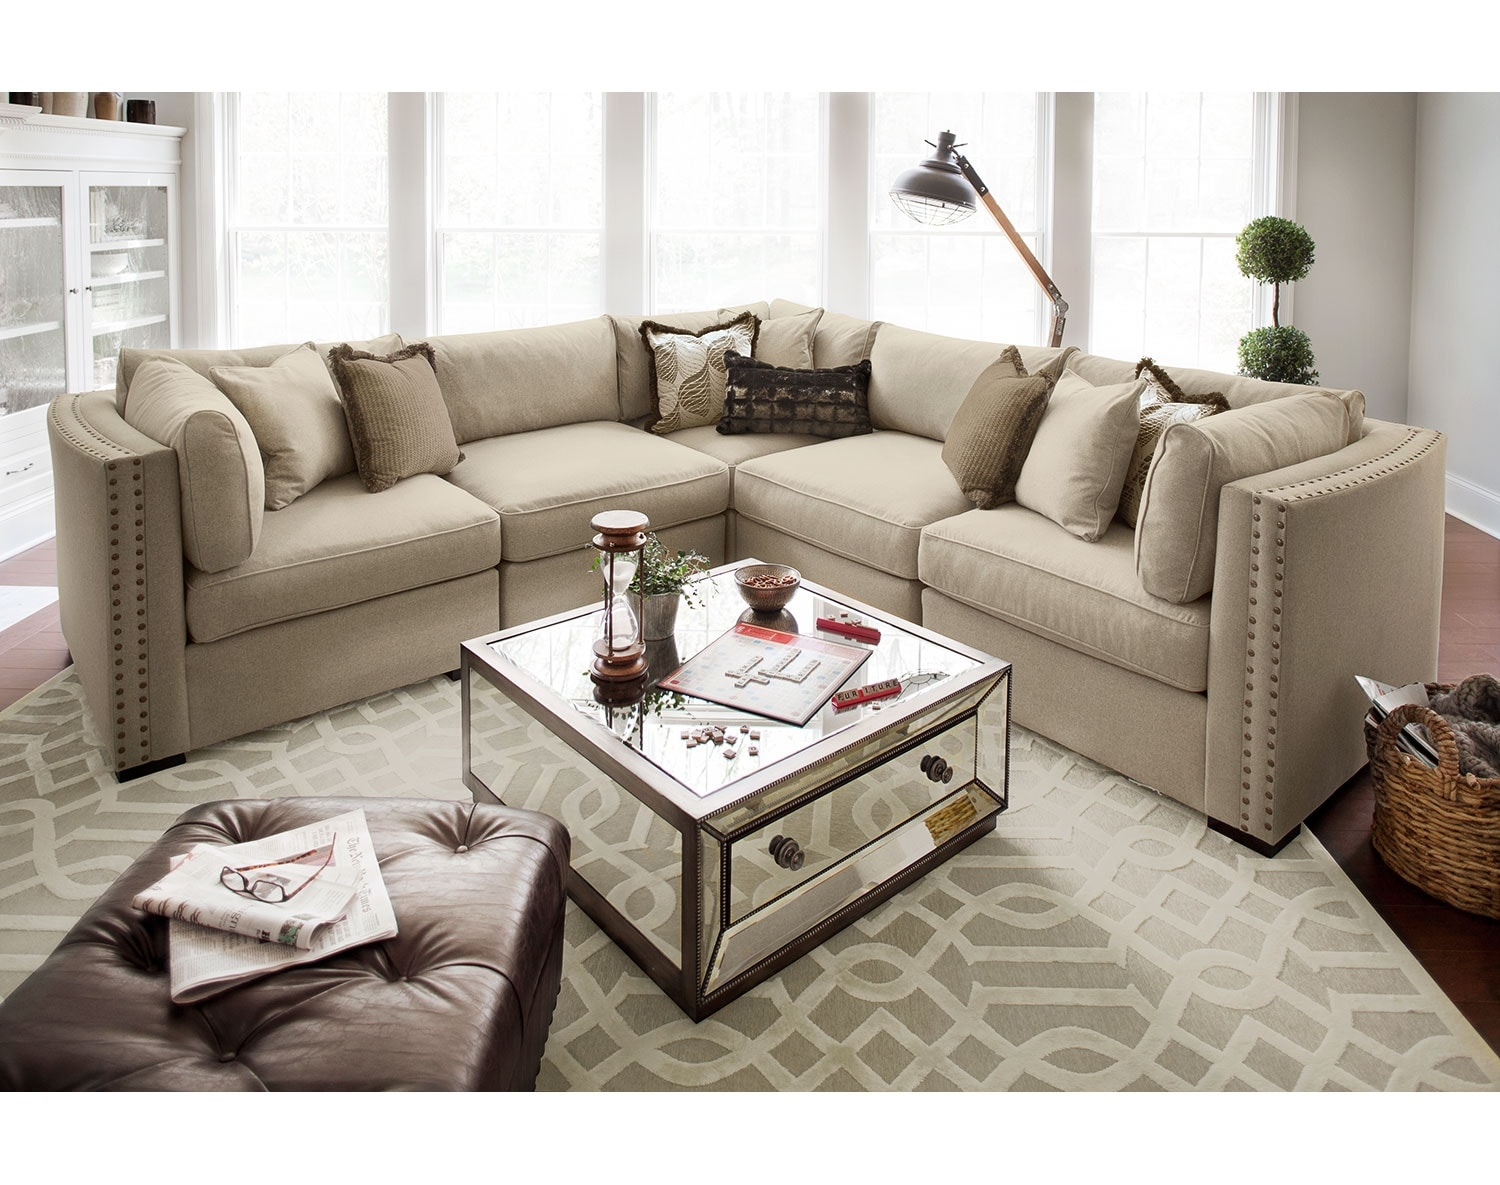 [The Athens Living Room Collection]